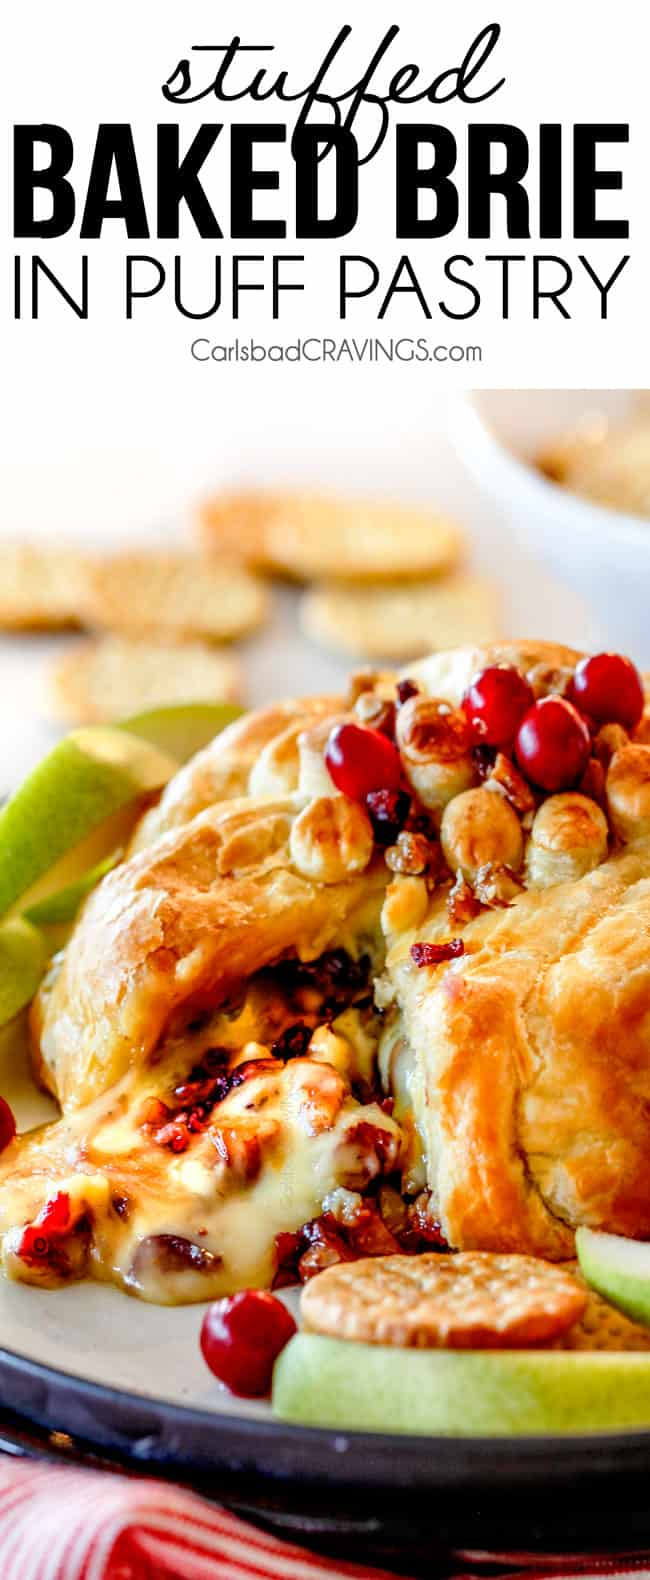 baked brie in puff pastry with with jam and cranberries oozing out of center